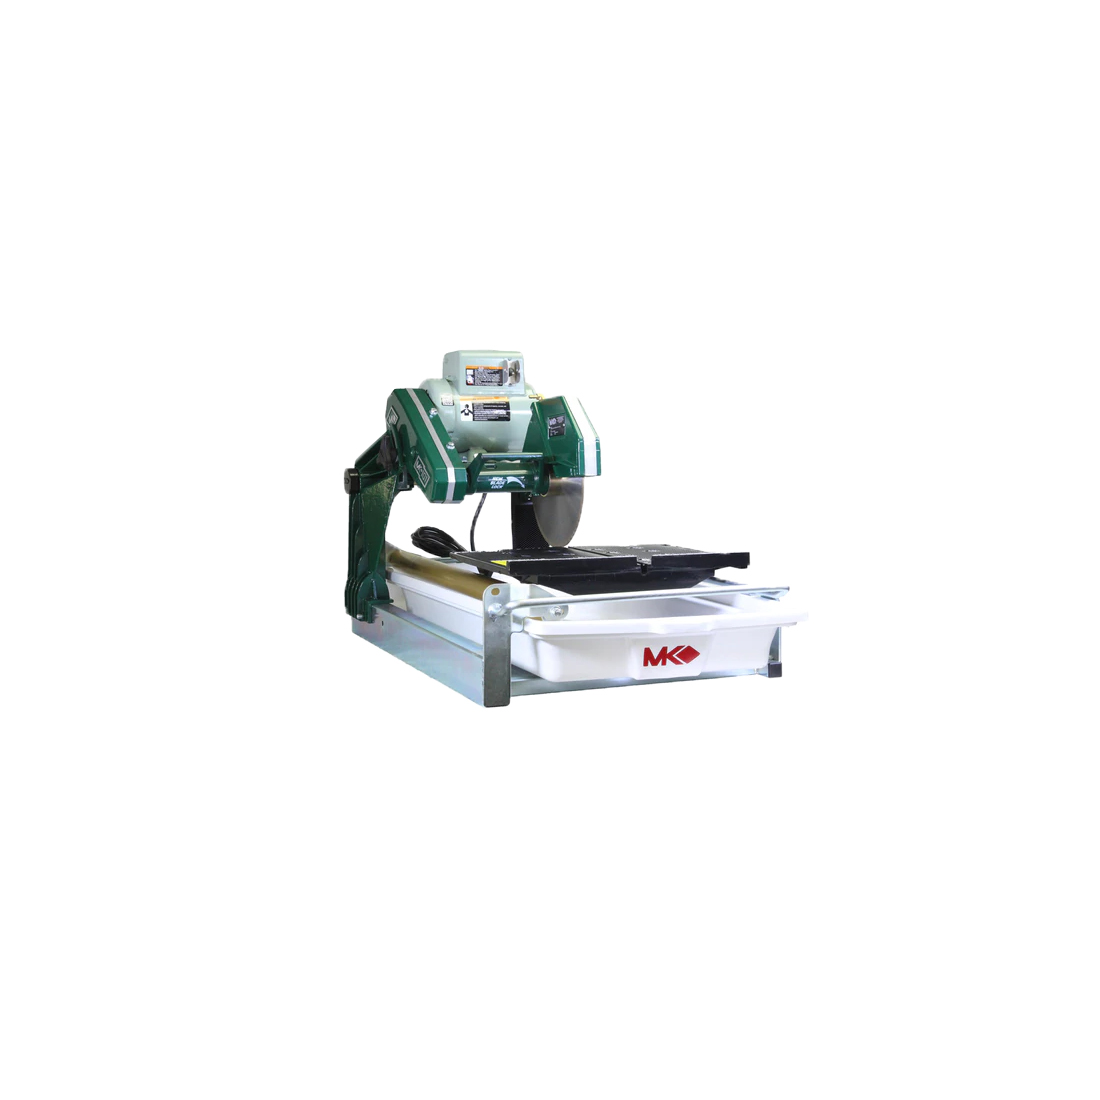 Covington MK Tile Saw - 110V